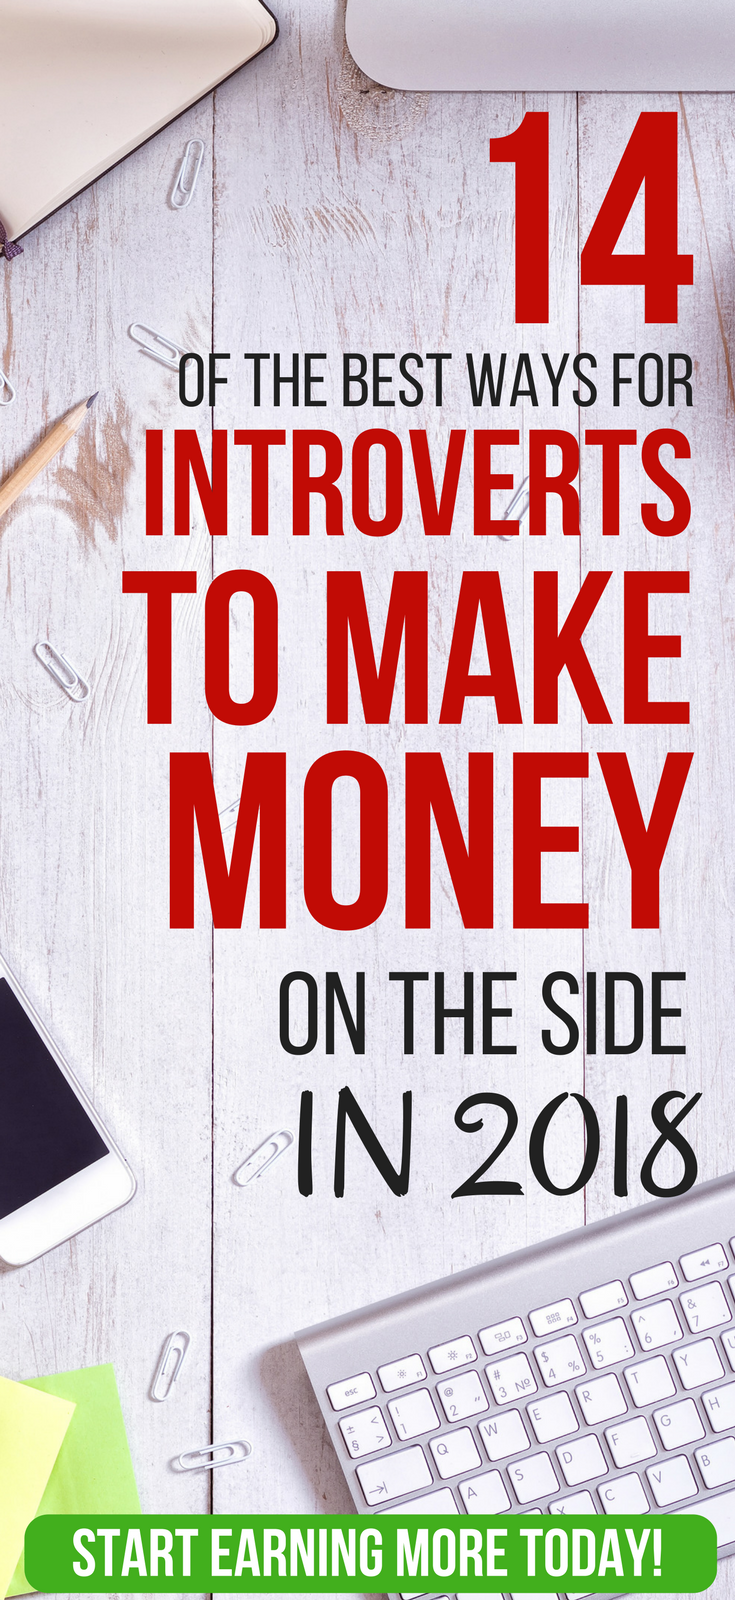 9 ways introverts can make money without a job extra money hustle